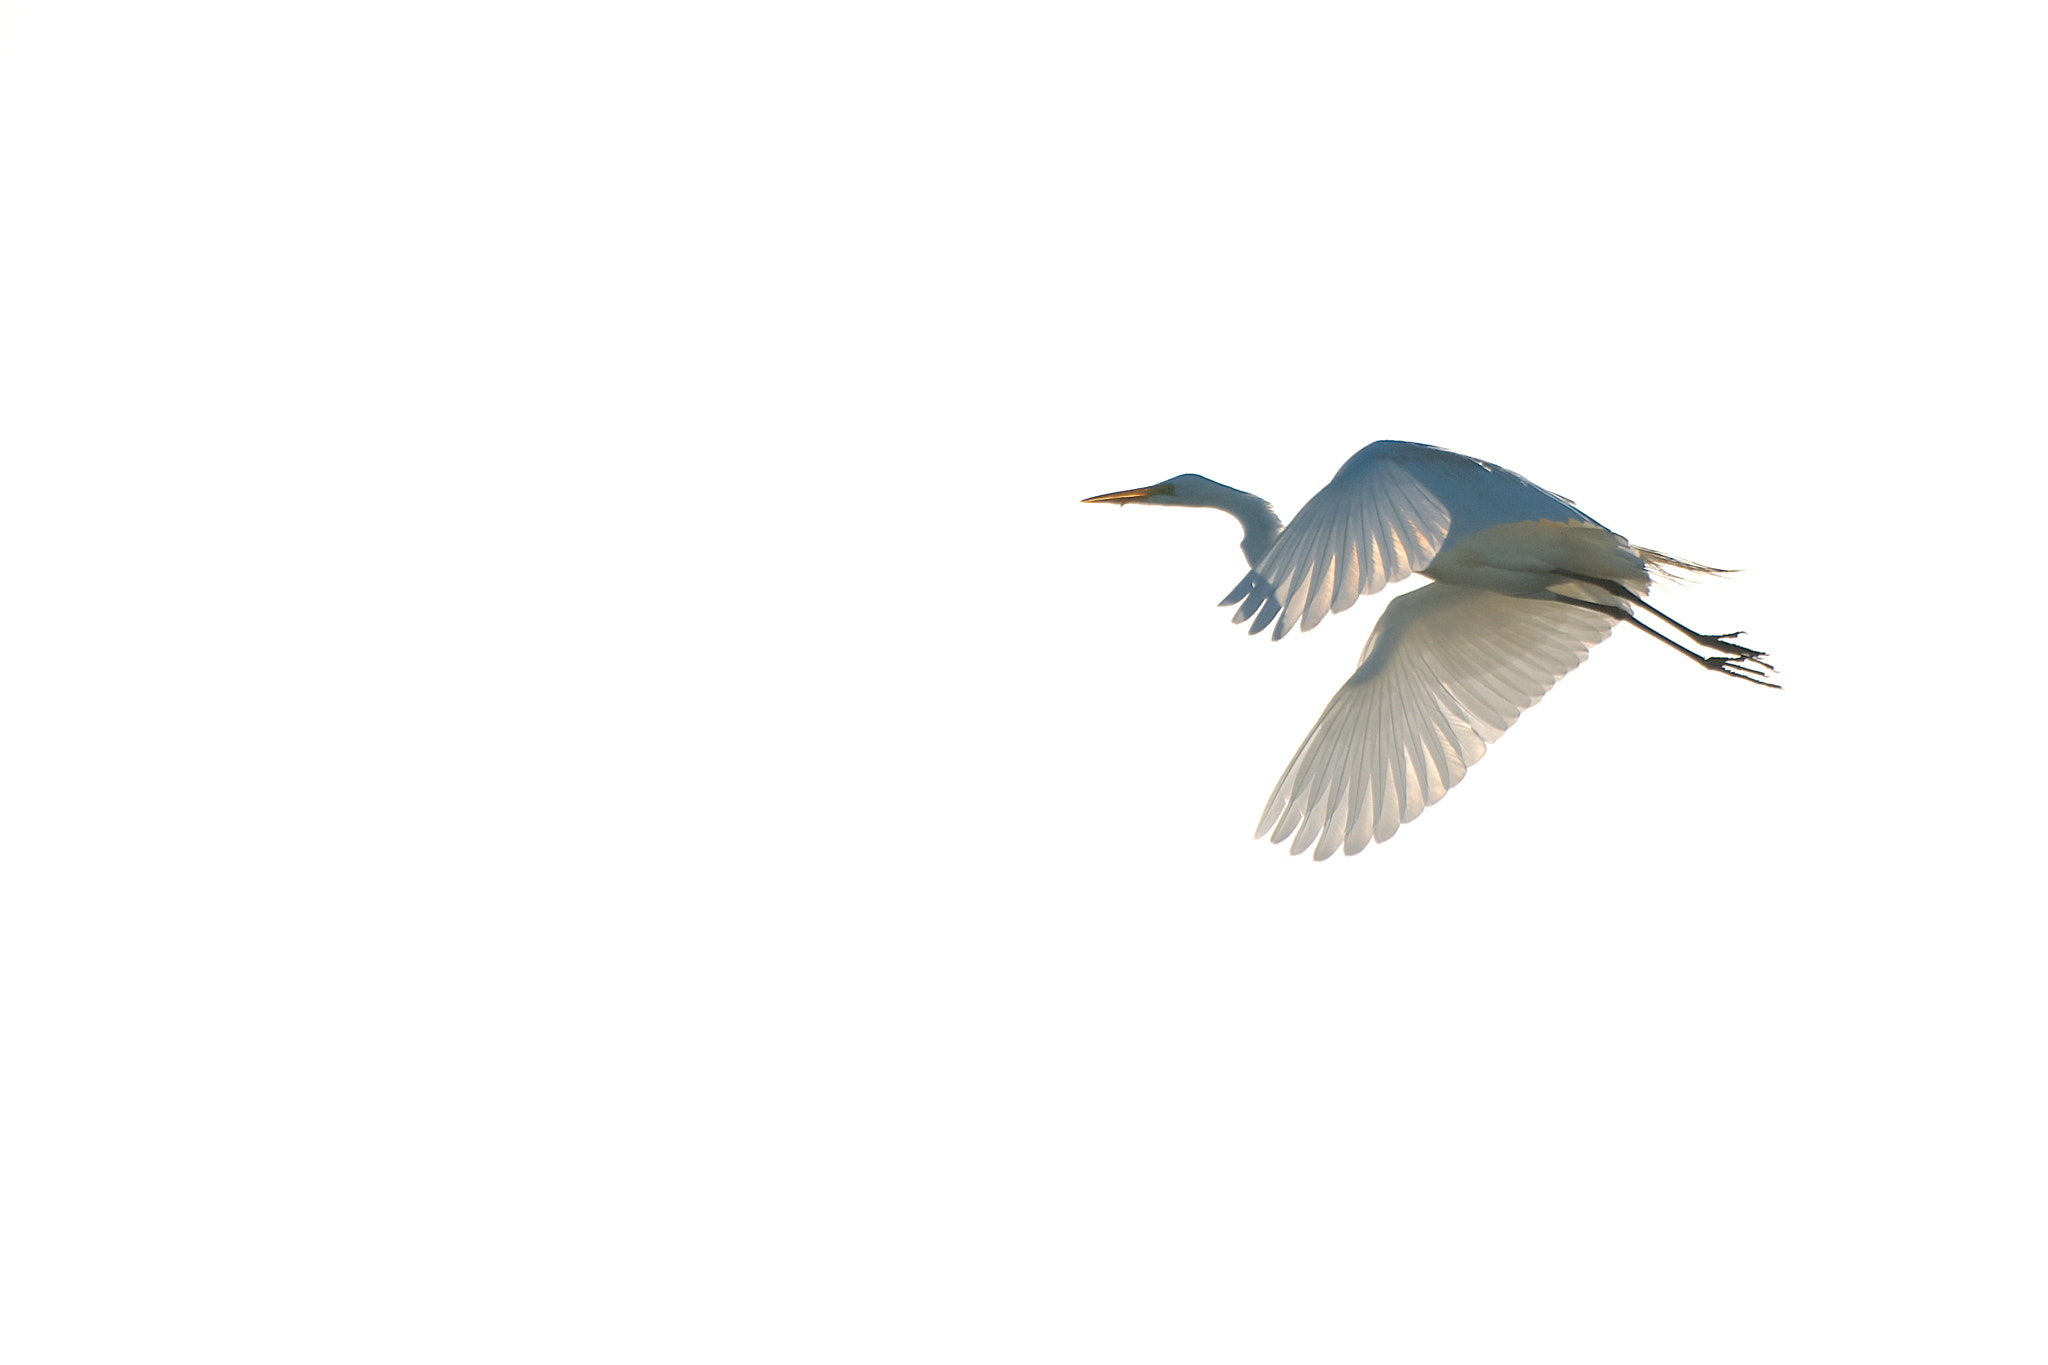 Photograph Egret by Remco Douma on 500px